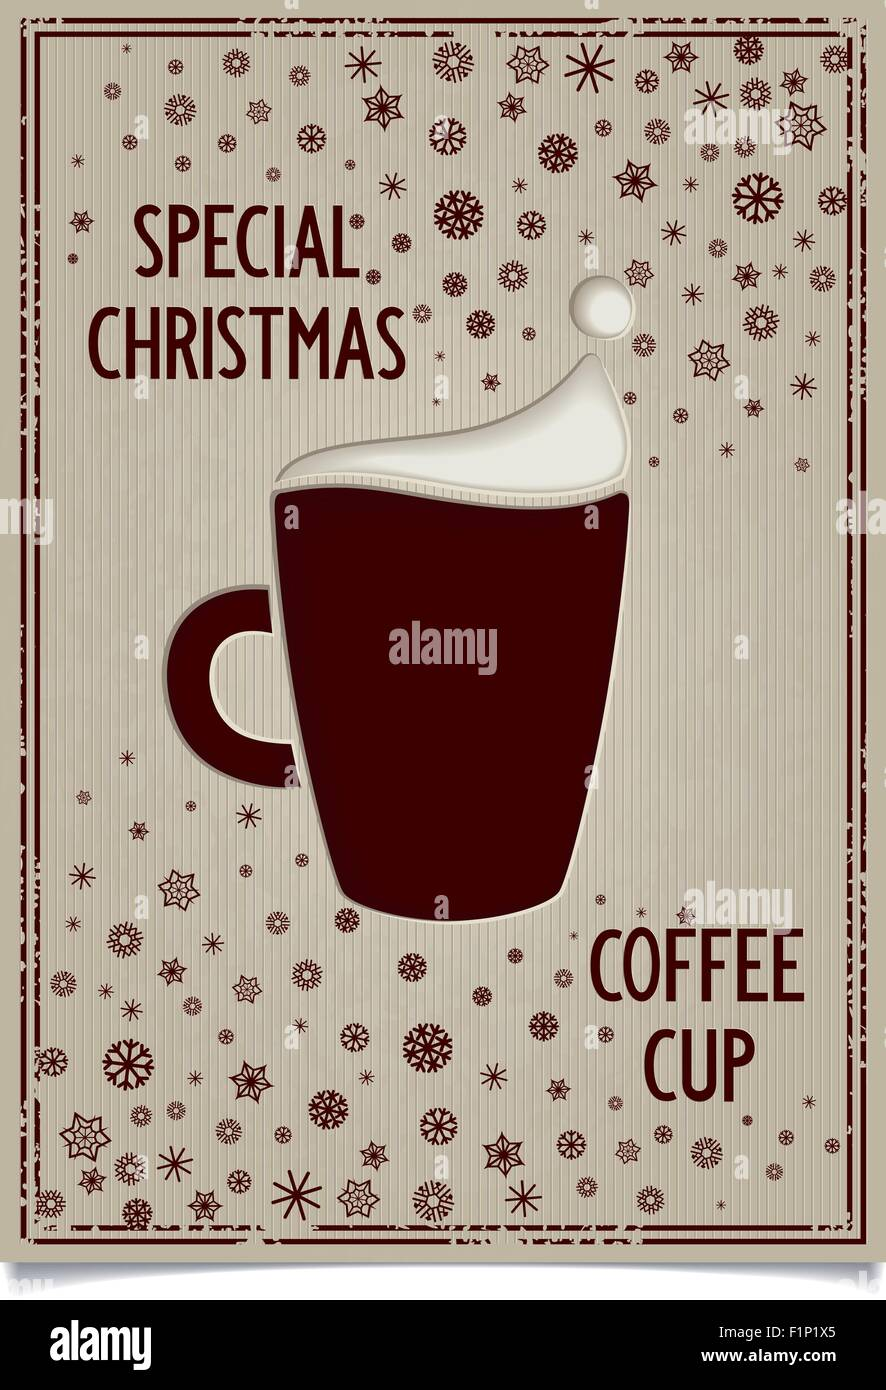 Christmas Restaurant Poster.Christmas Poster Design For Restaurant And Cafe With Fun Cup